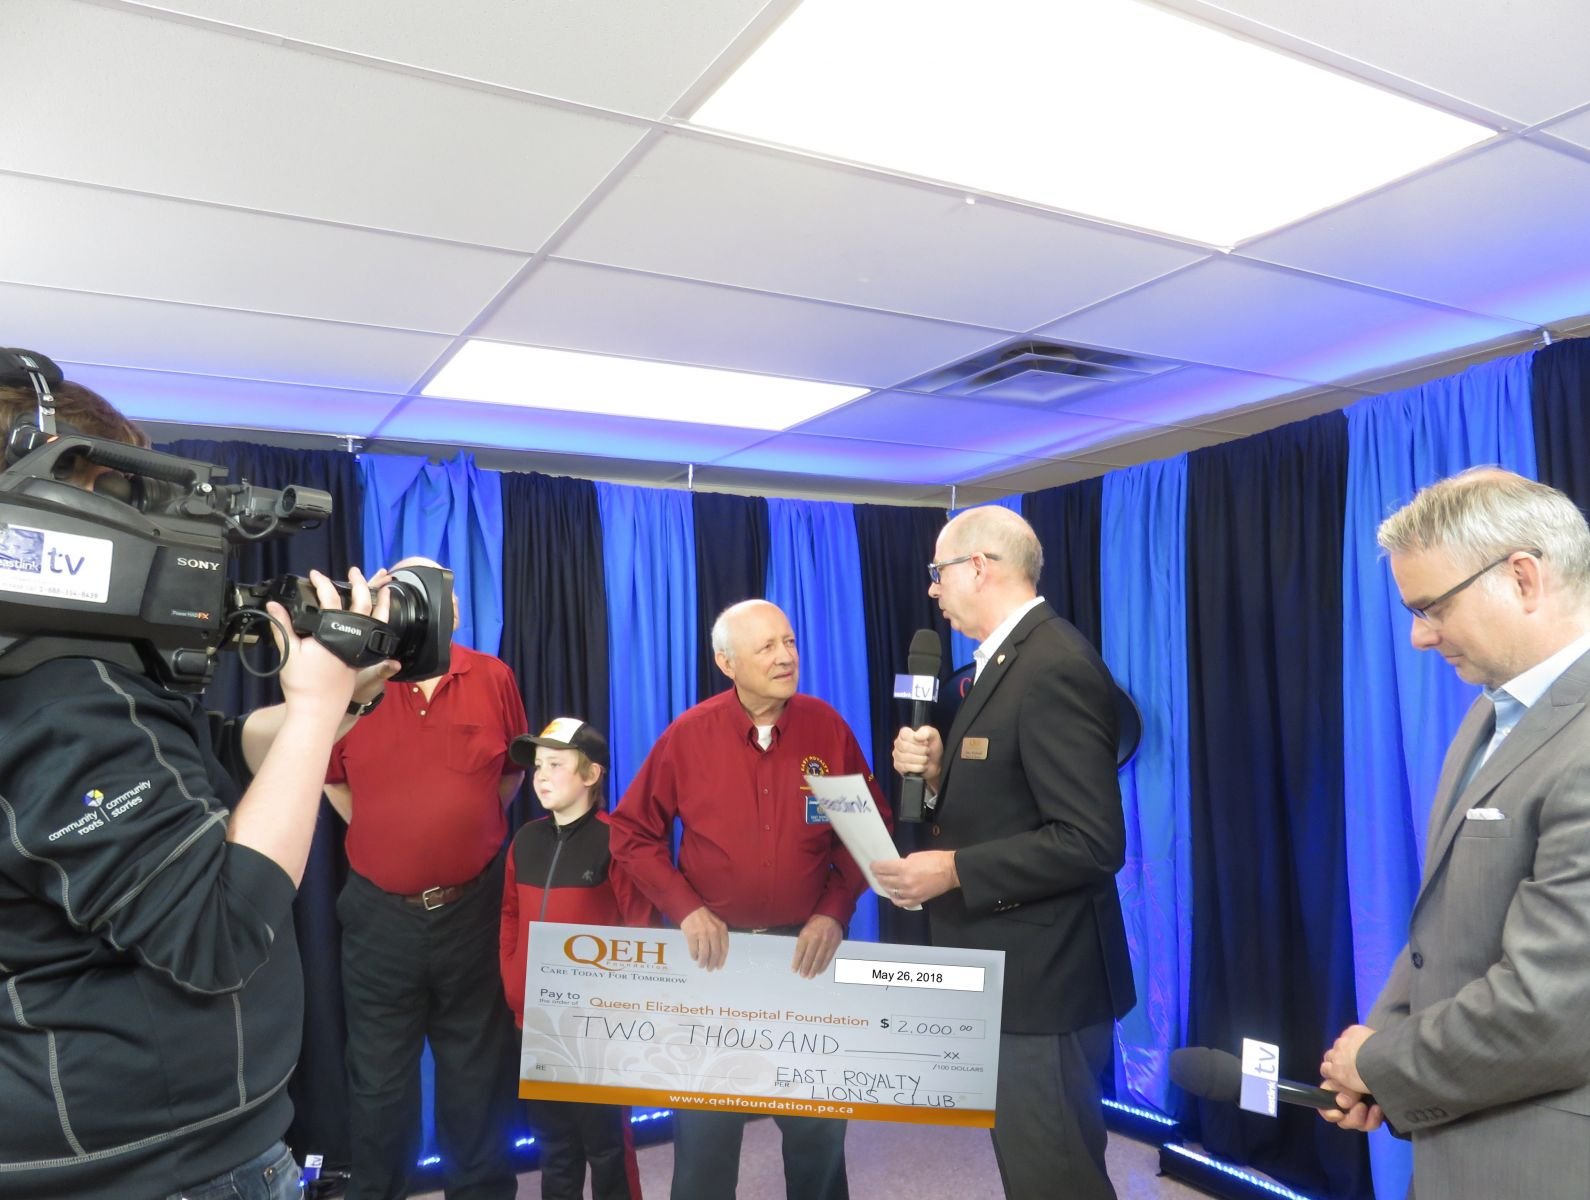 Presentation of Check for QEH